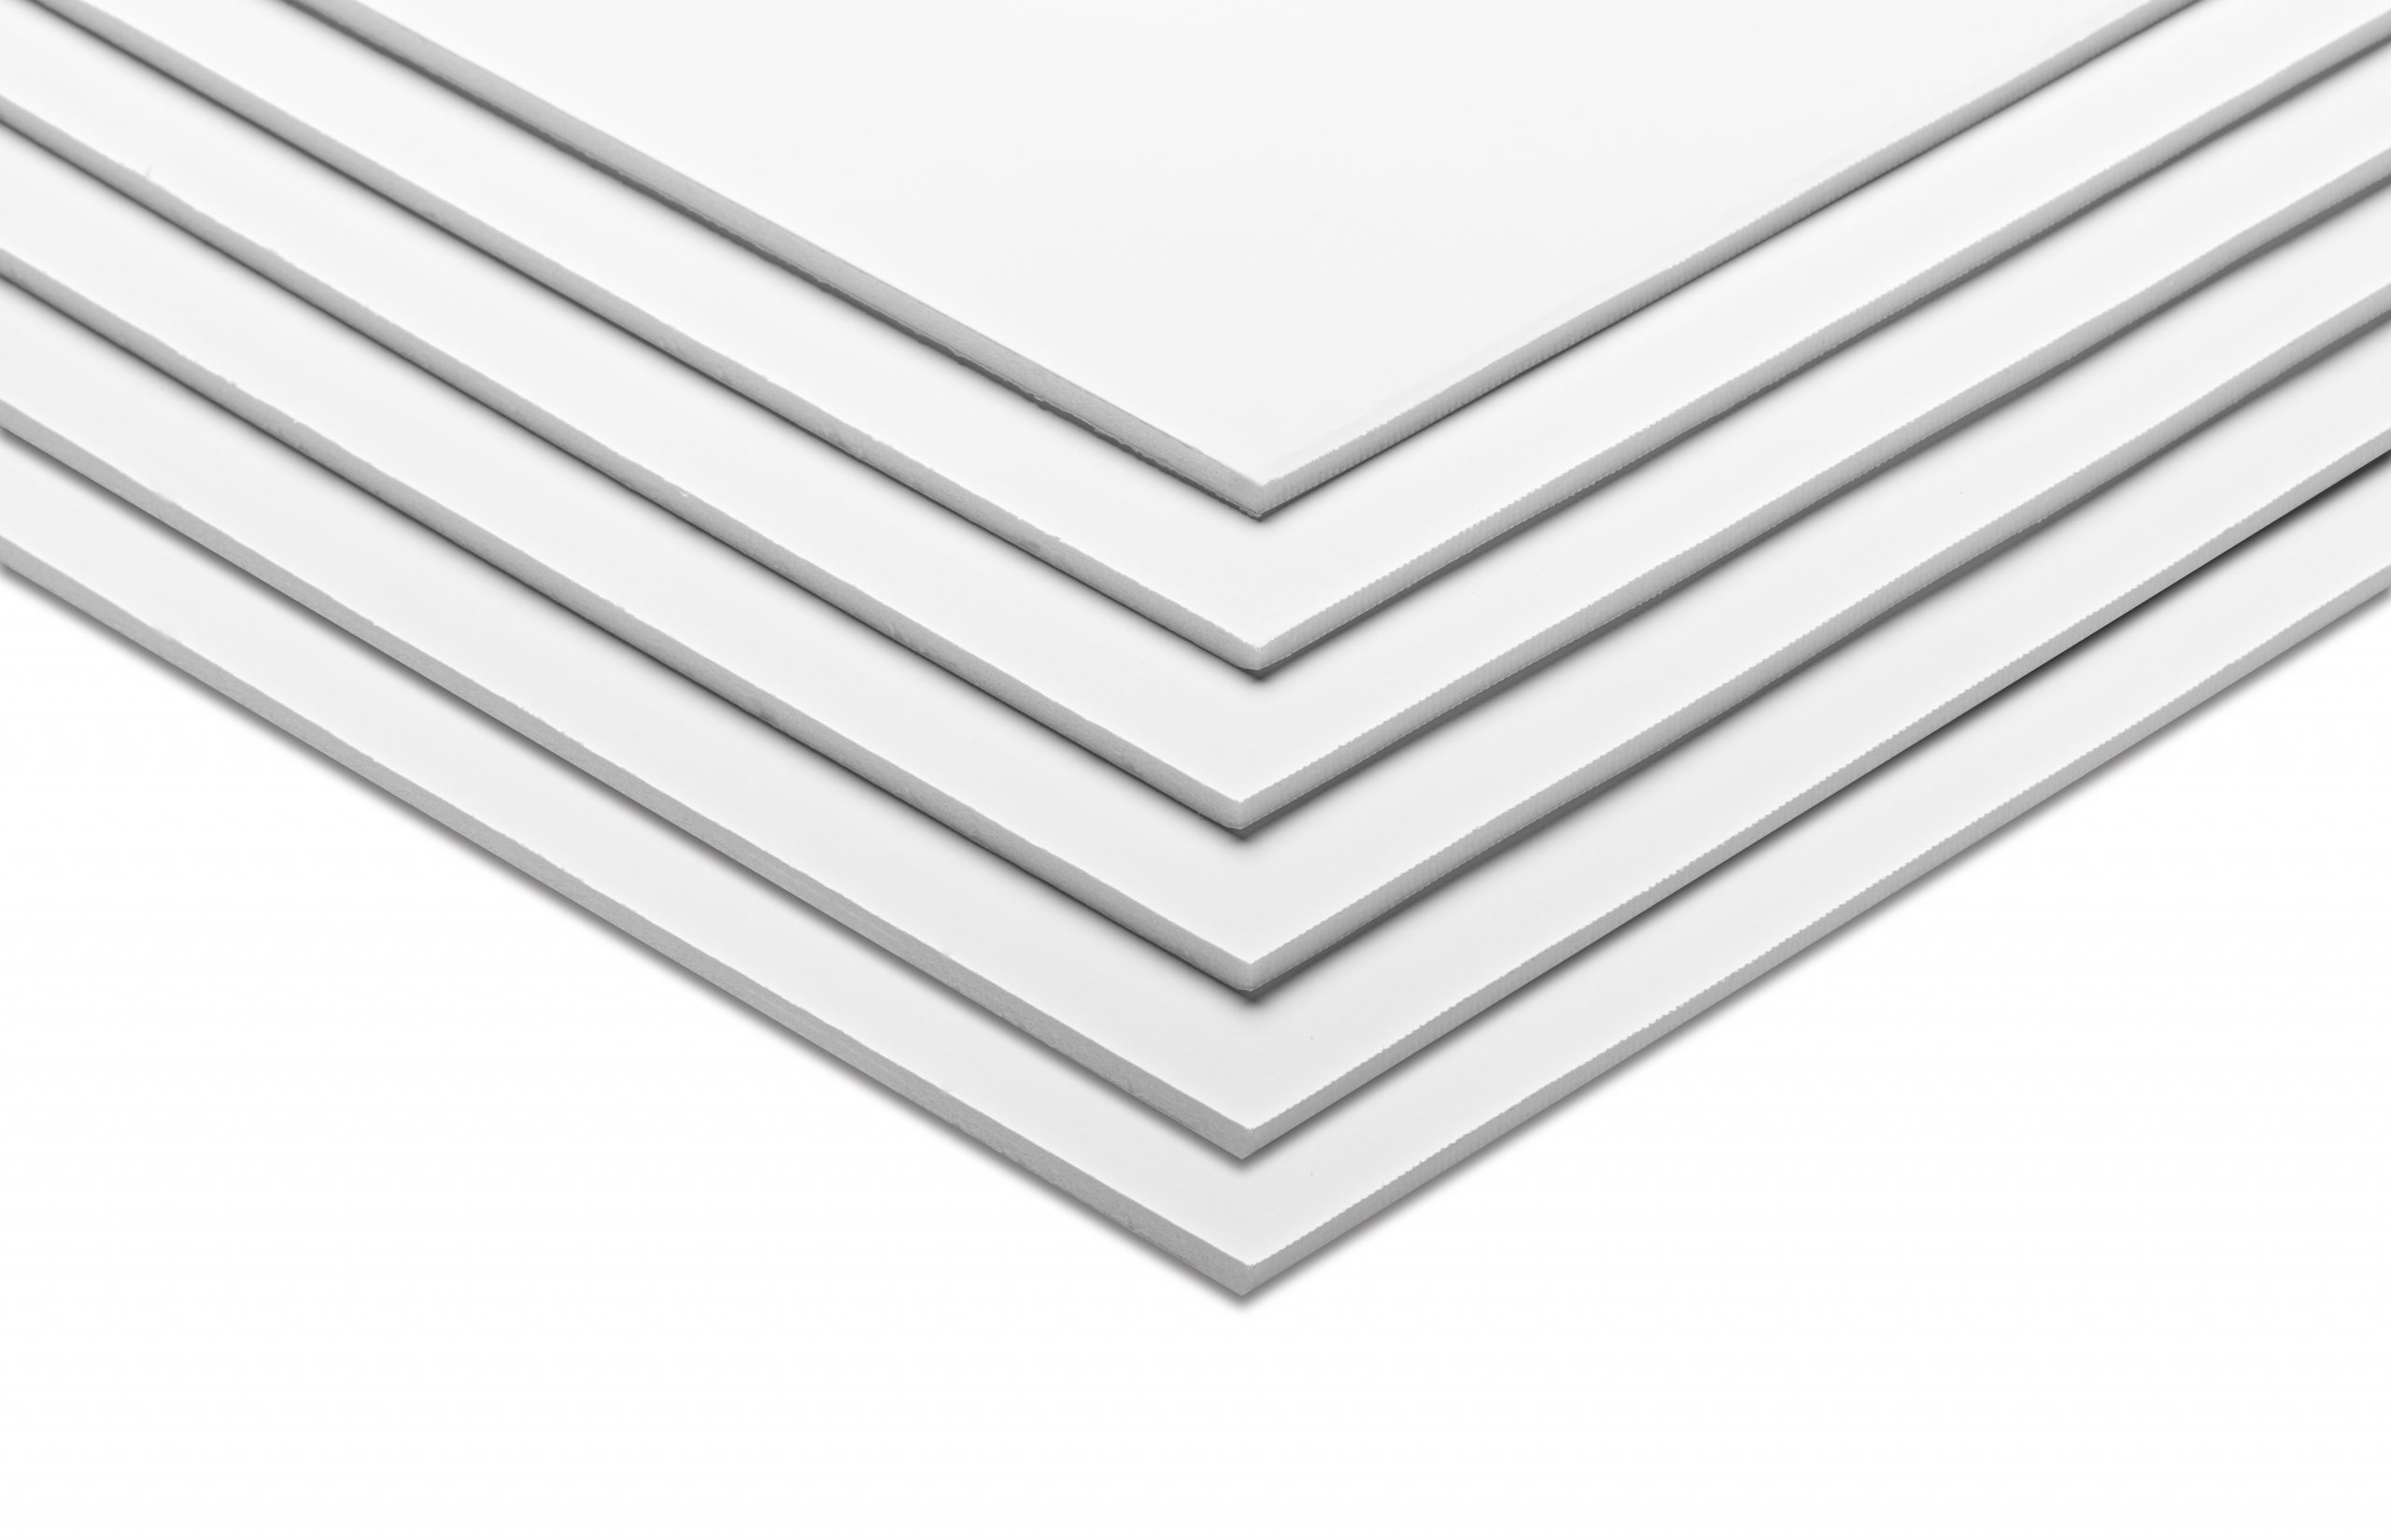 5mm Foam Boards Sheets-6&12 Packs